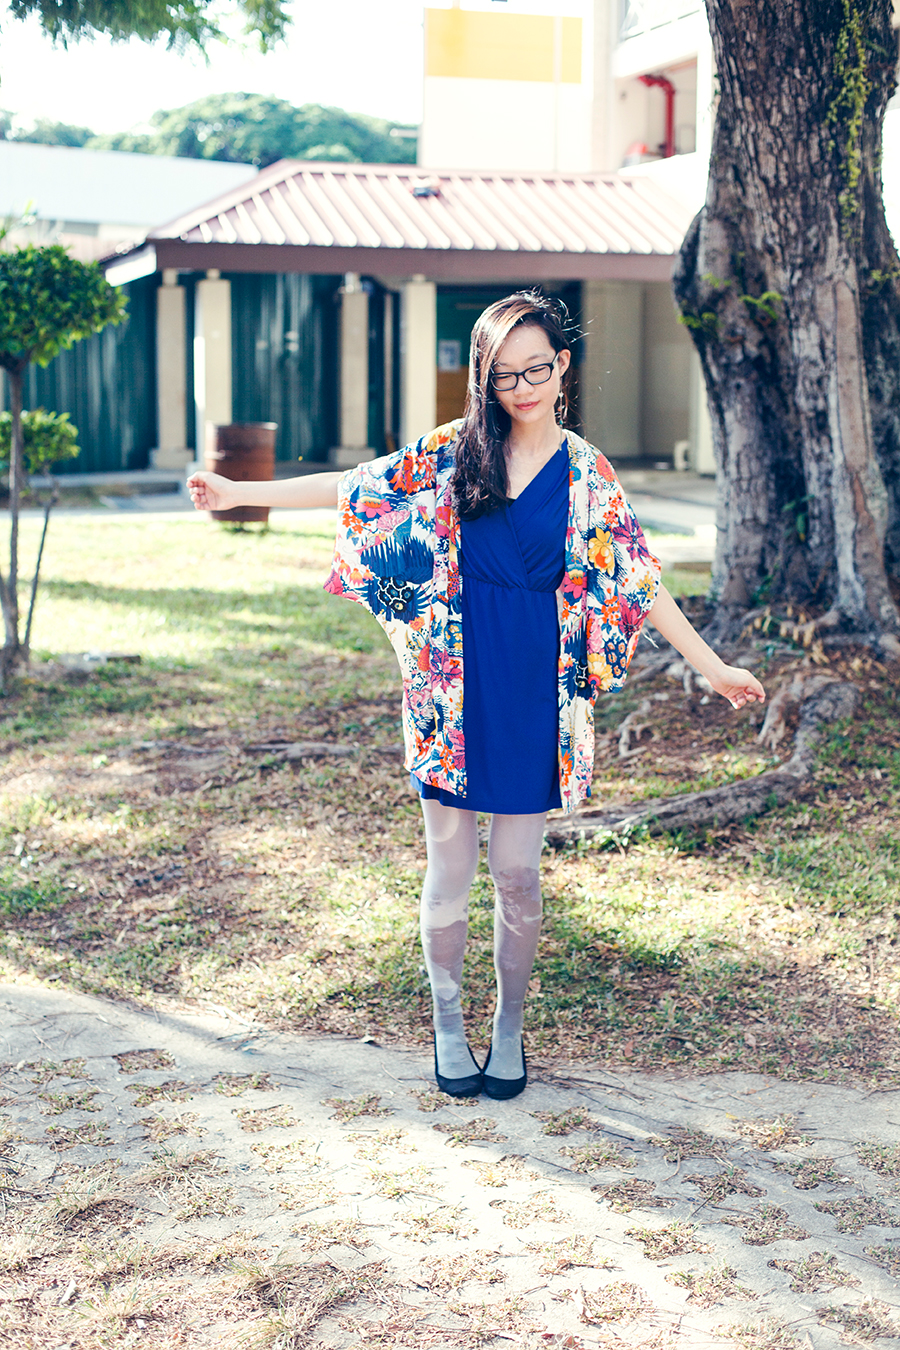 Moon Flowers outfit: DressLink floral kimono cardigan, Passport Love blue v-neck dress, Urban Outfitters moon landscape tights, Rubi black ballet flats, Gap black frame glasses, handmade cutlery earrings.